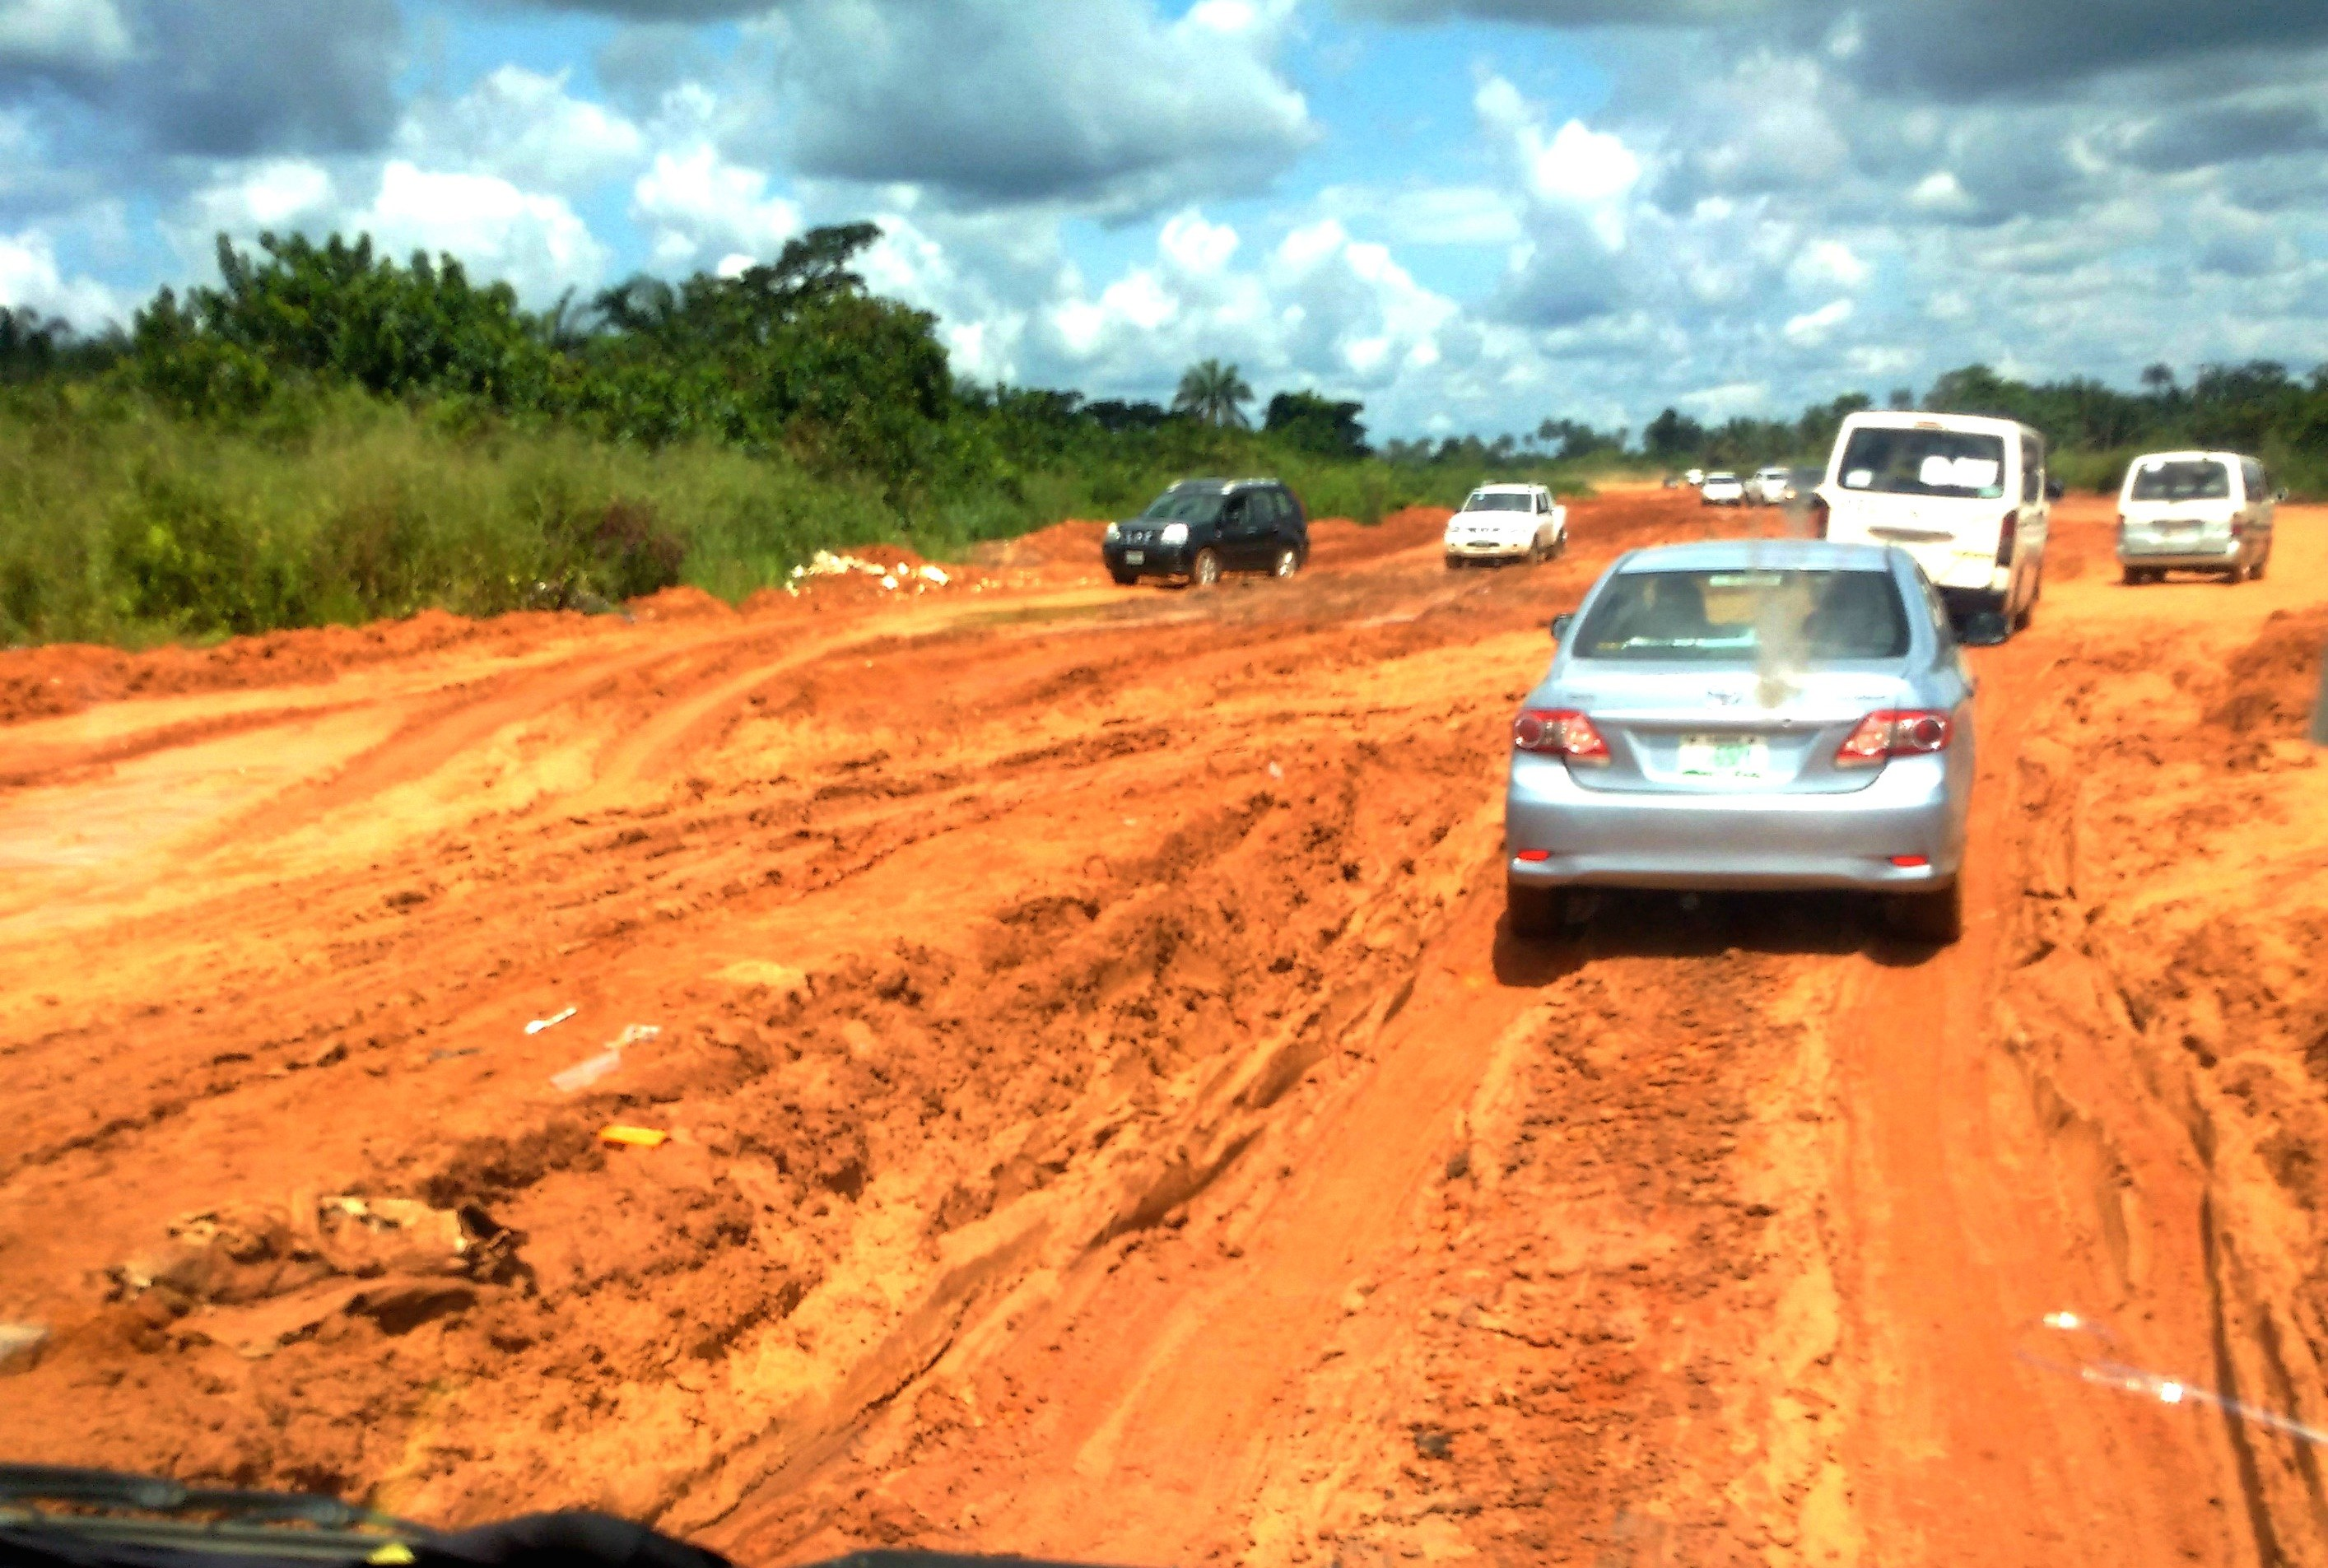 Insecurity on the Owerri-Port Harcourt Road